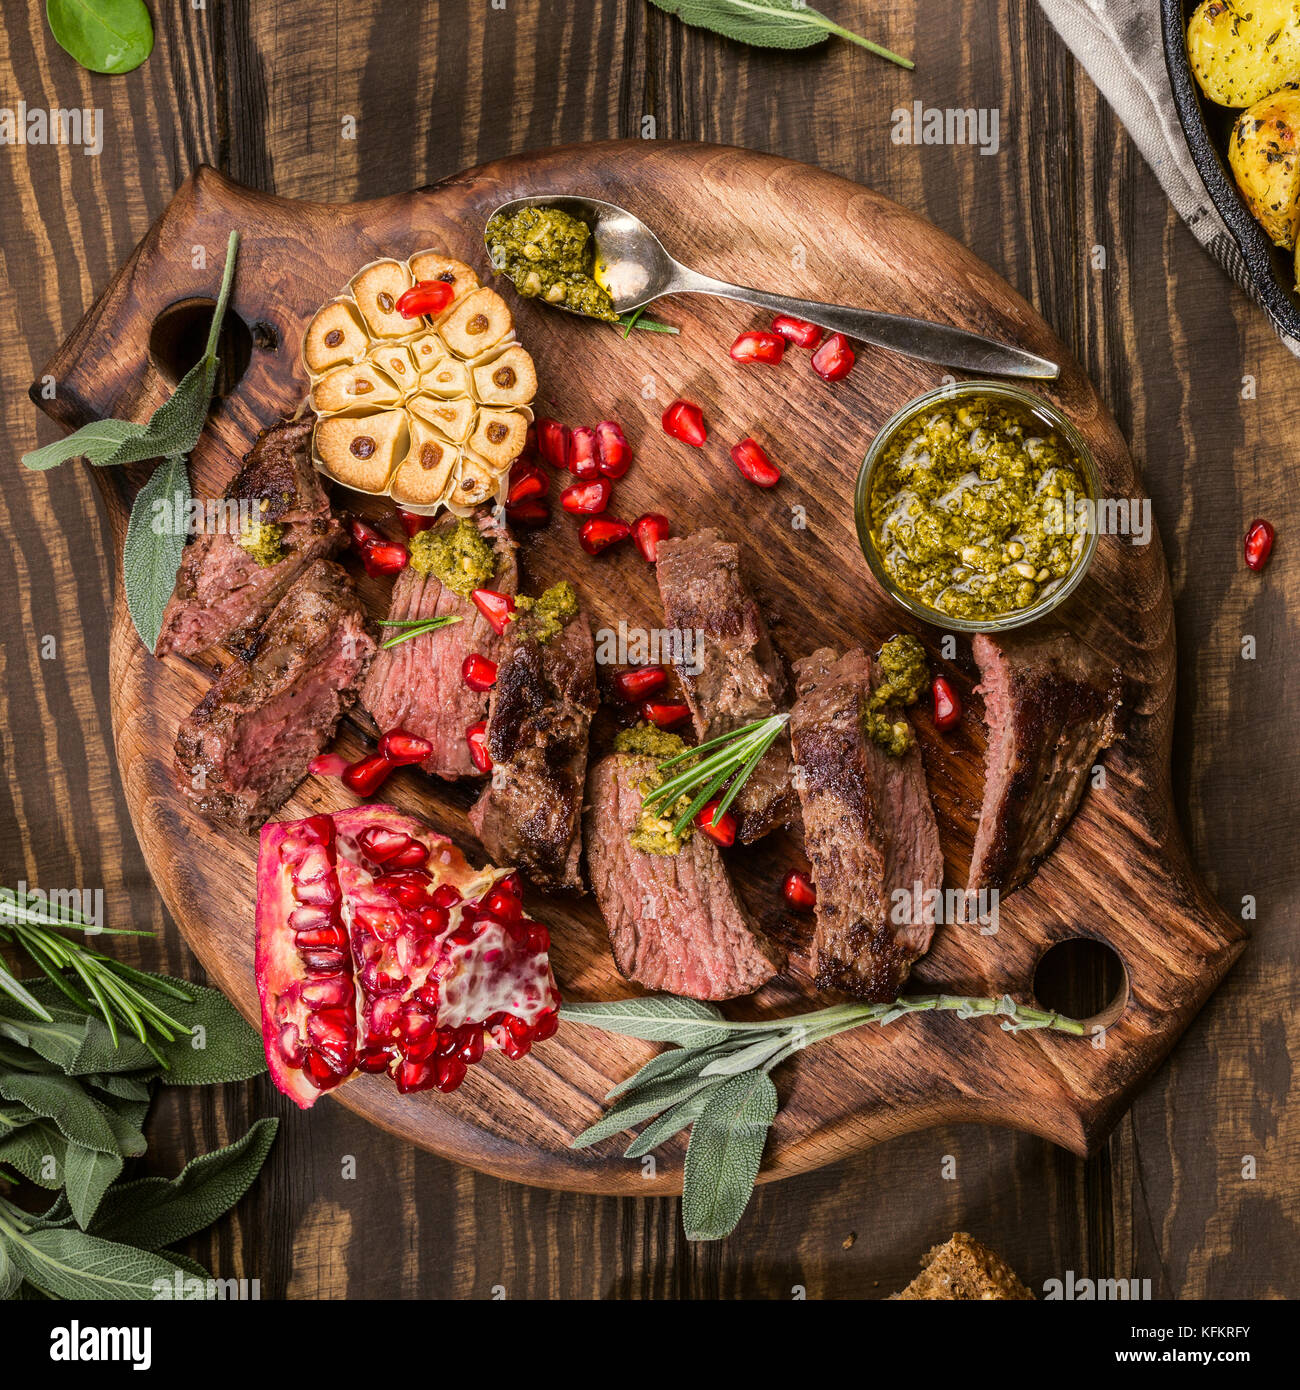 Meat steak with green pesto - Stock Image